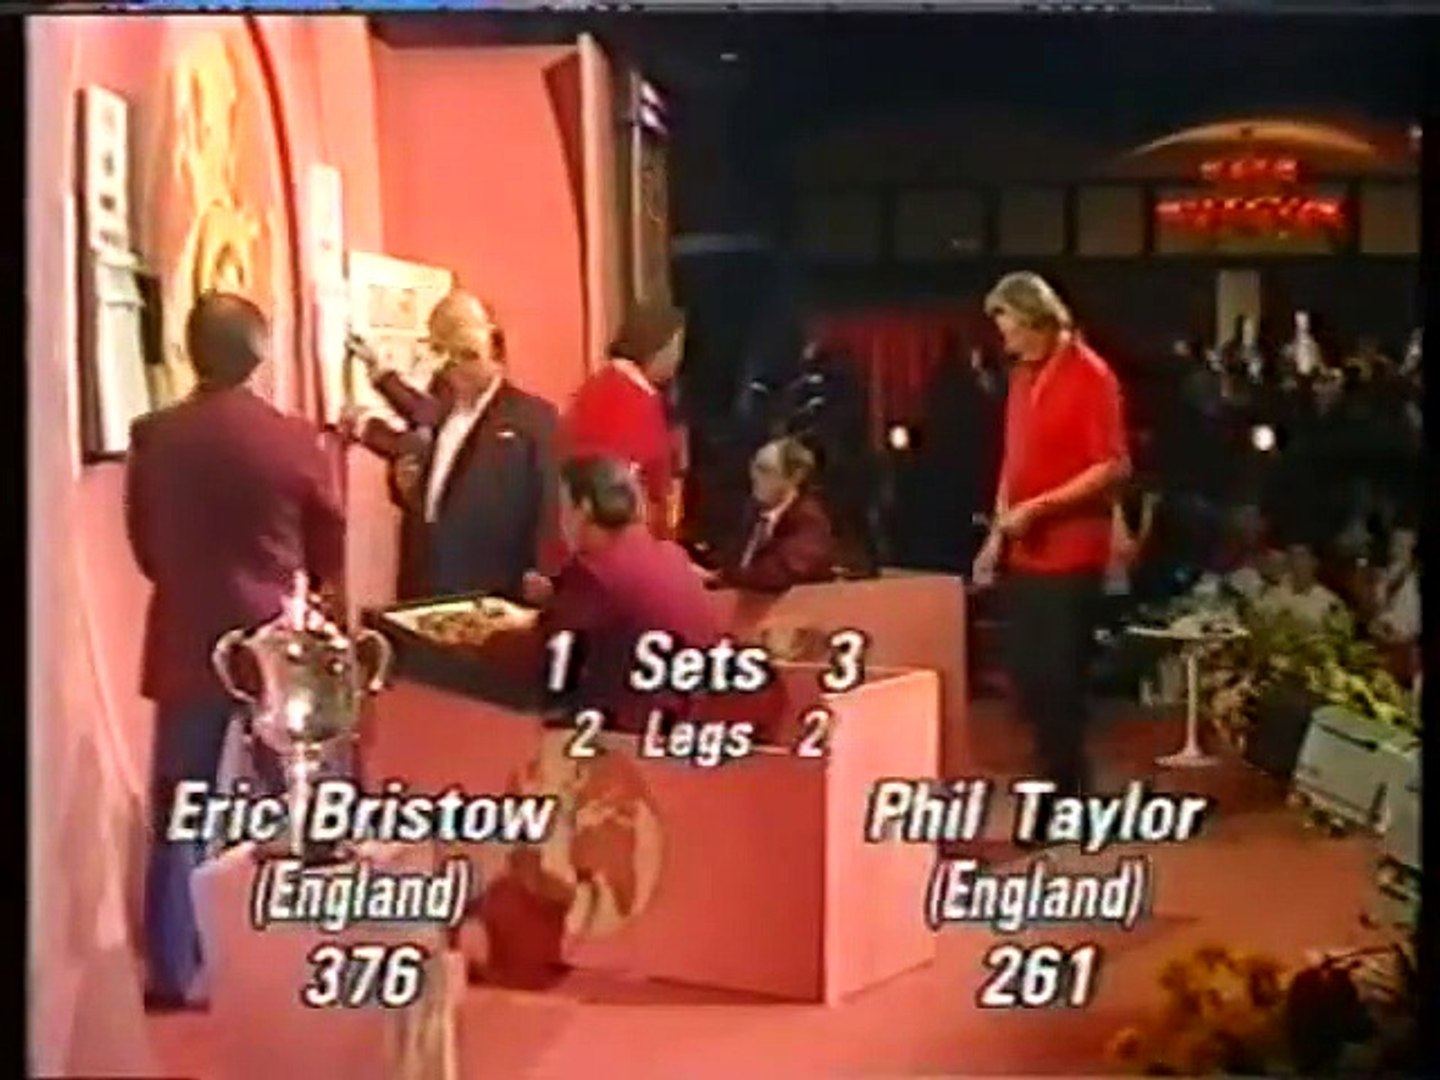 BDO World Darts Championship Final 1990 - Phil Taylor vs Eric Bristow  2of2